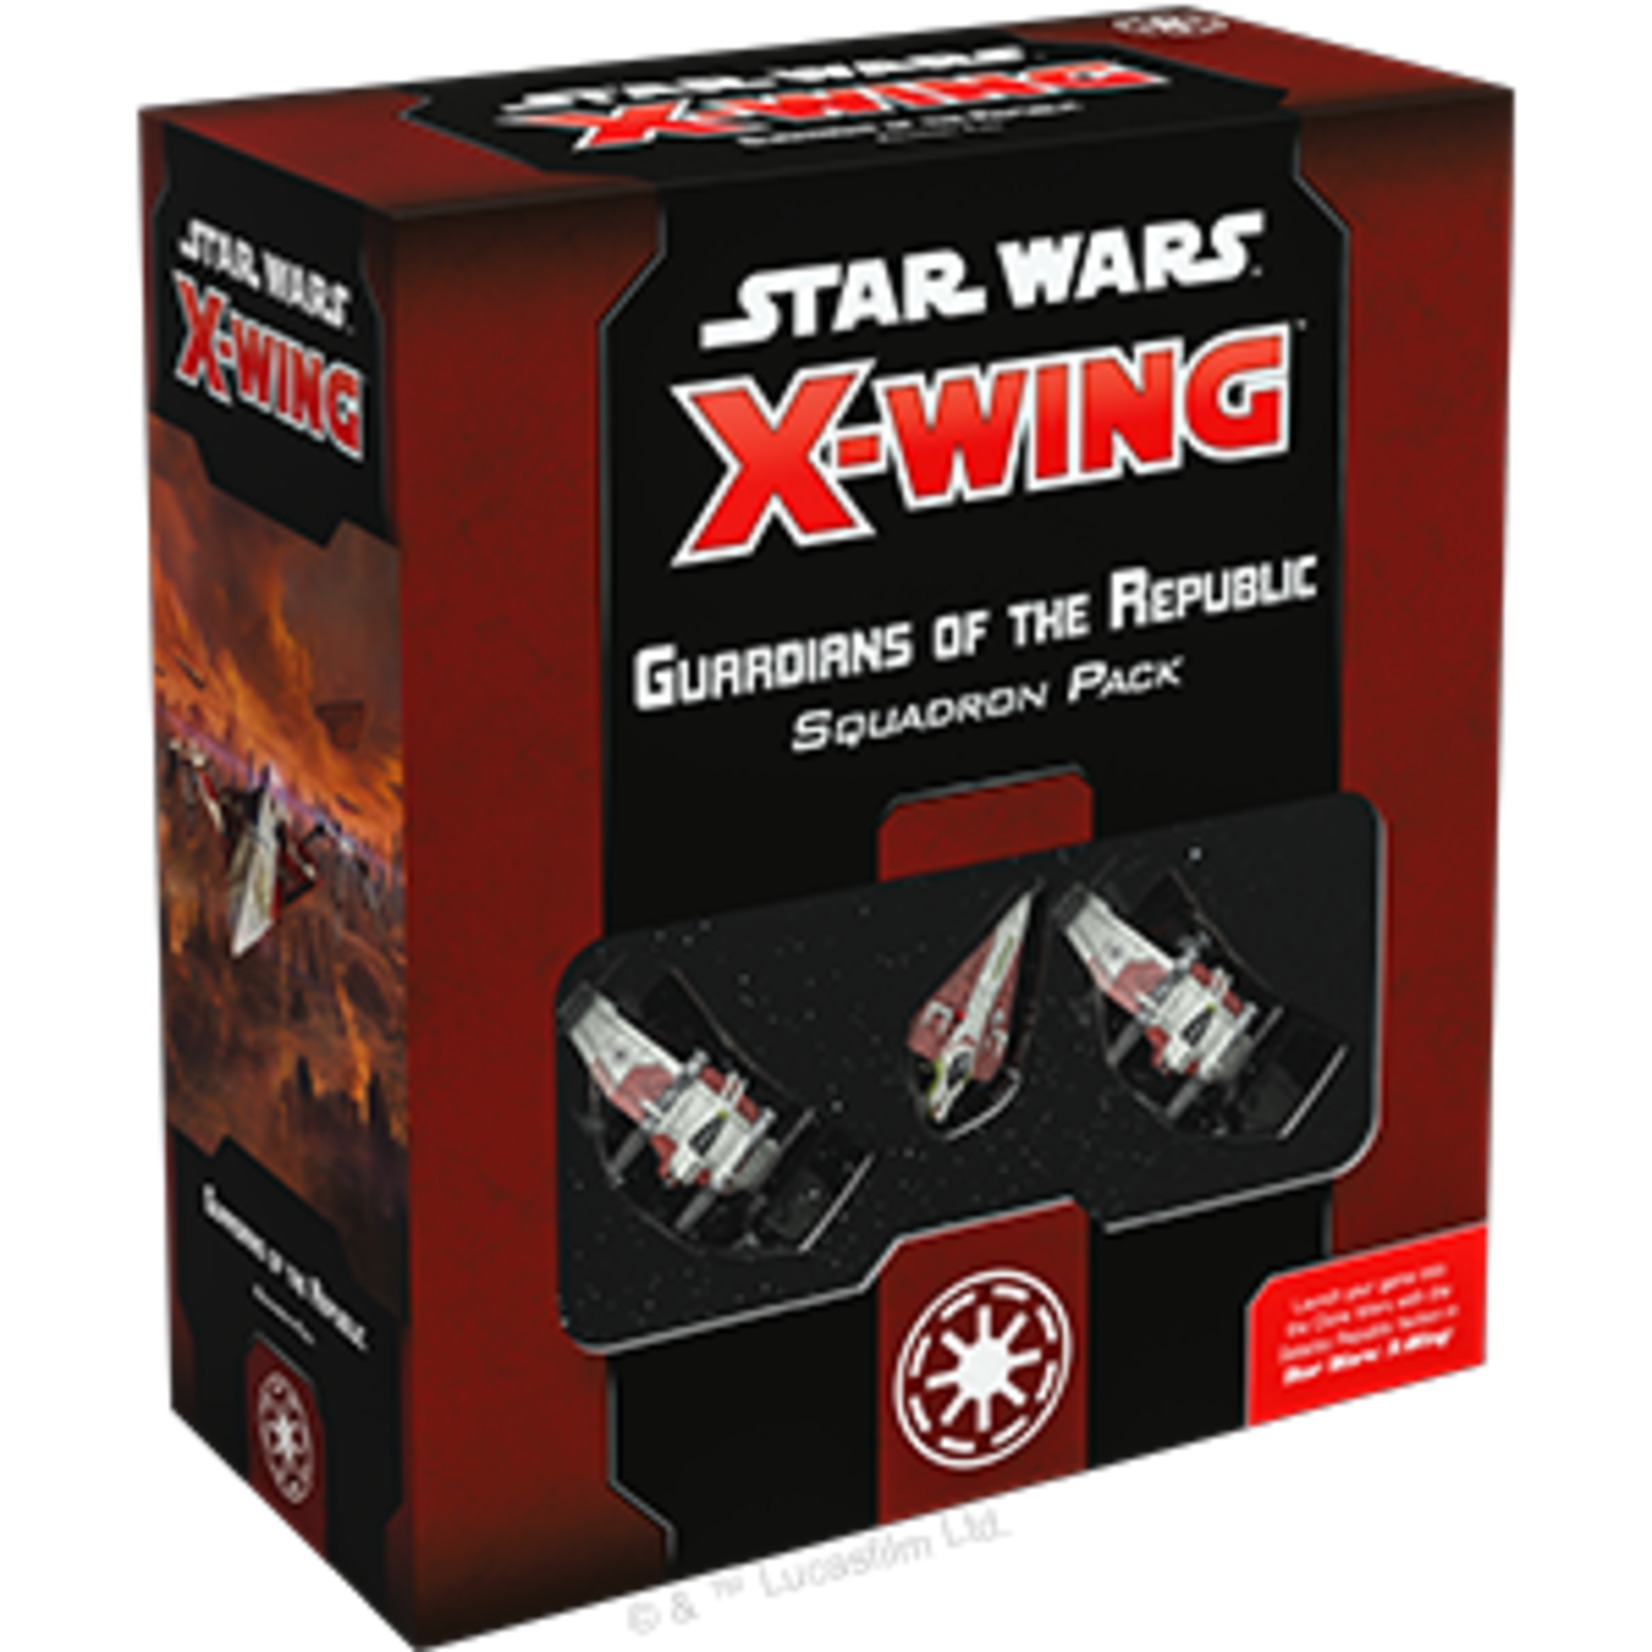 Fantasy Flight Games Star Wars X-Wing 2nd Edition: Guardians of the Republic Squadron Pack